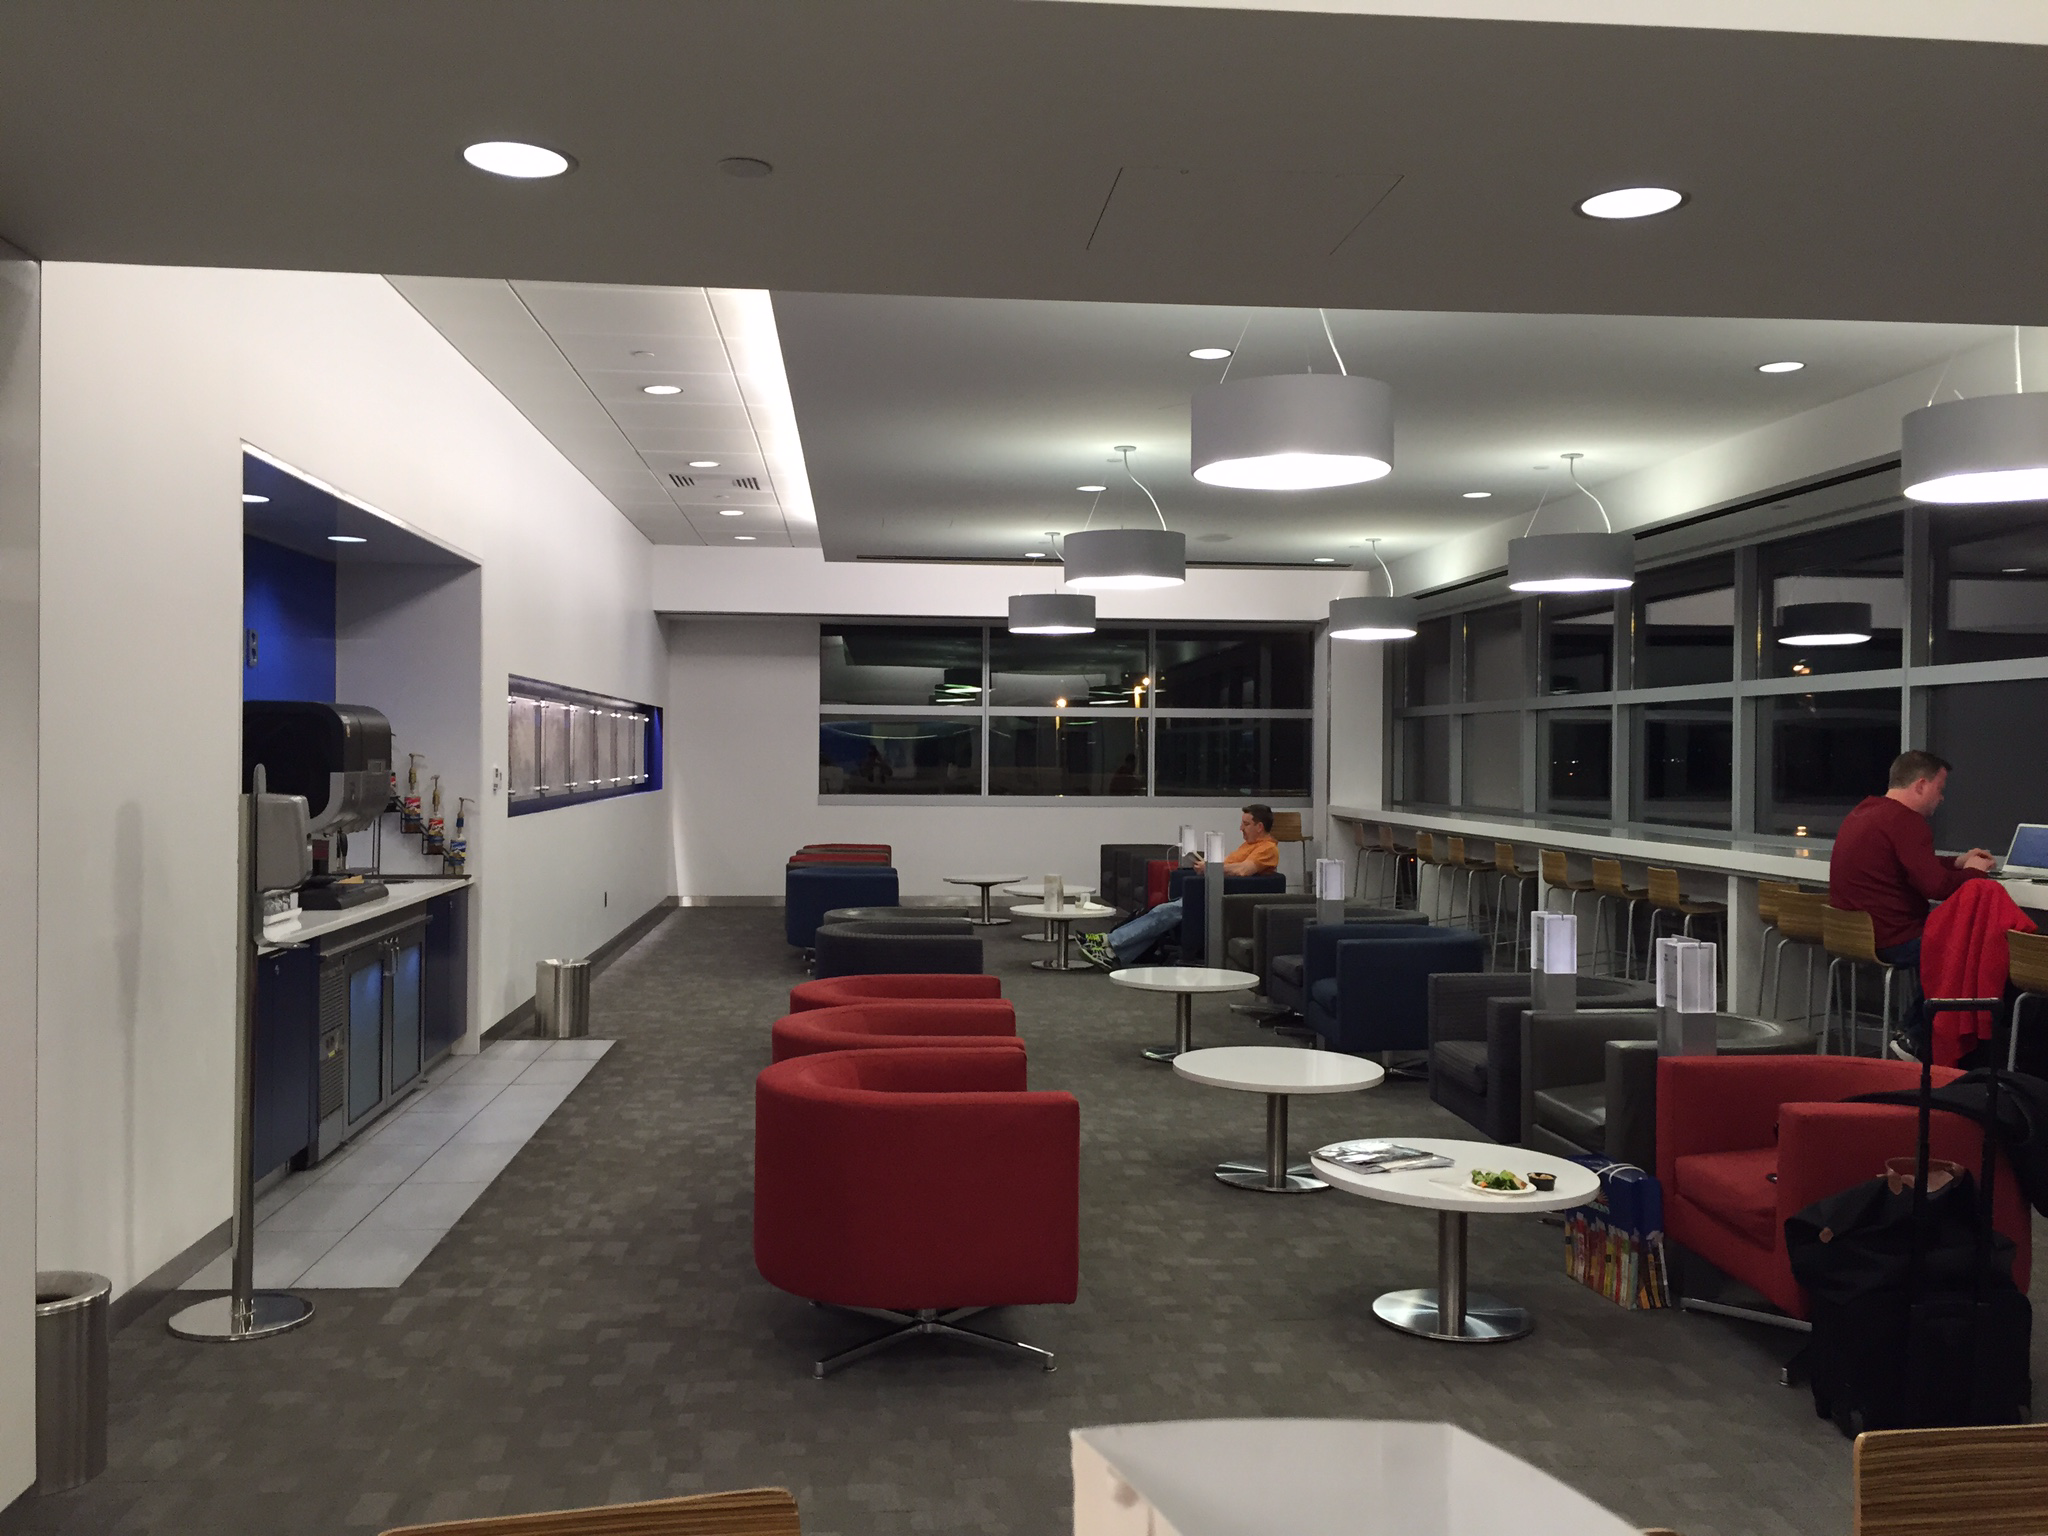 Review: Delta SkyClub Terminal 4 JFK Airport - One Mile at ...